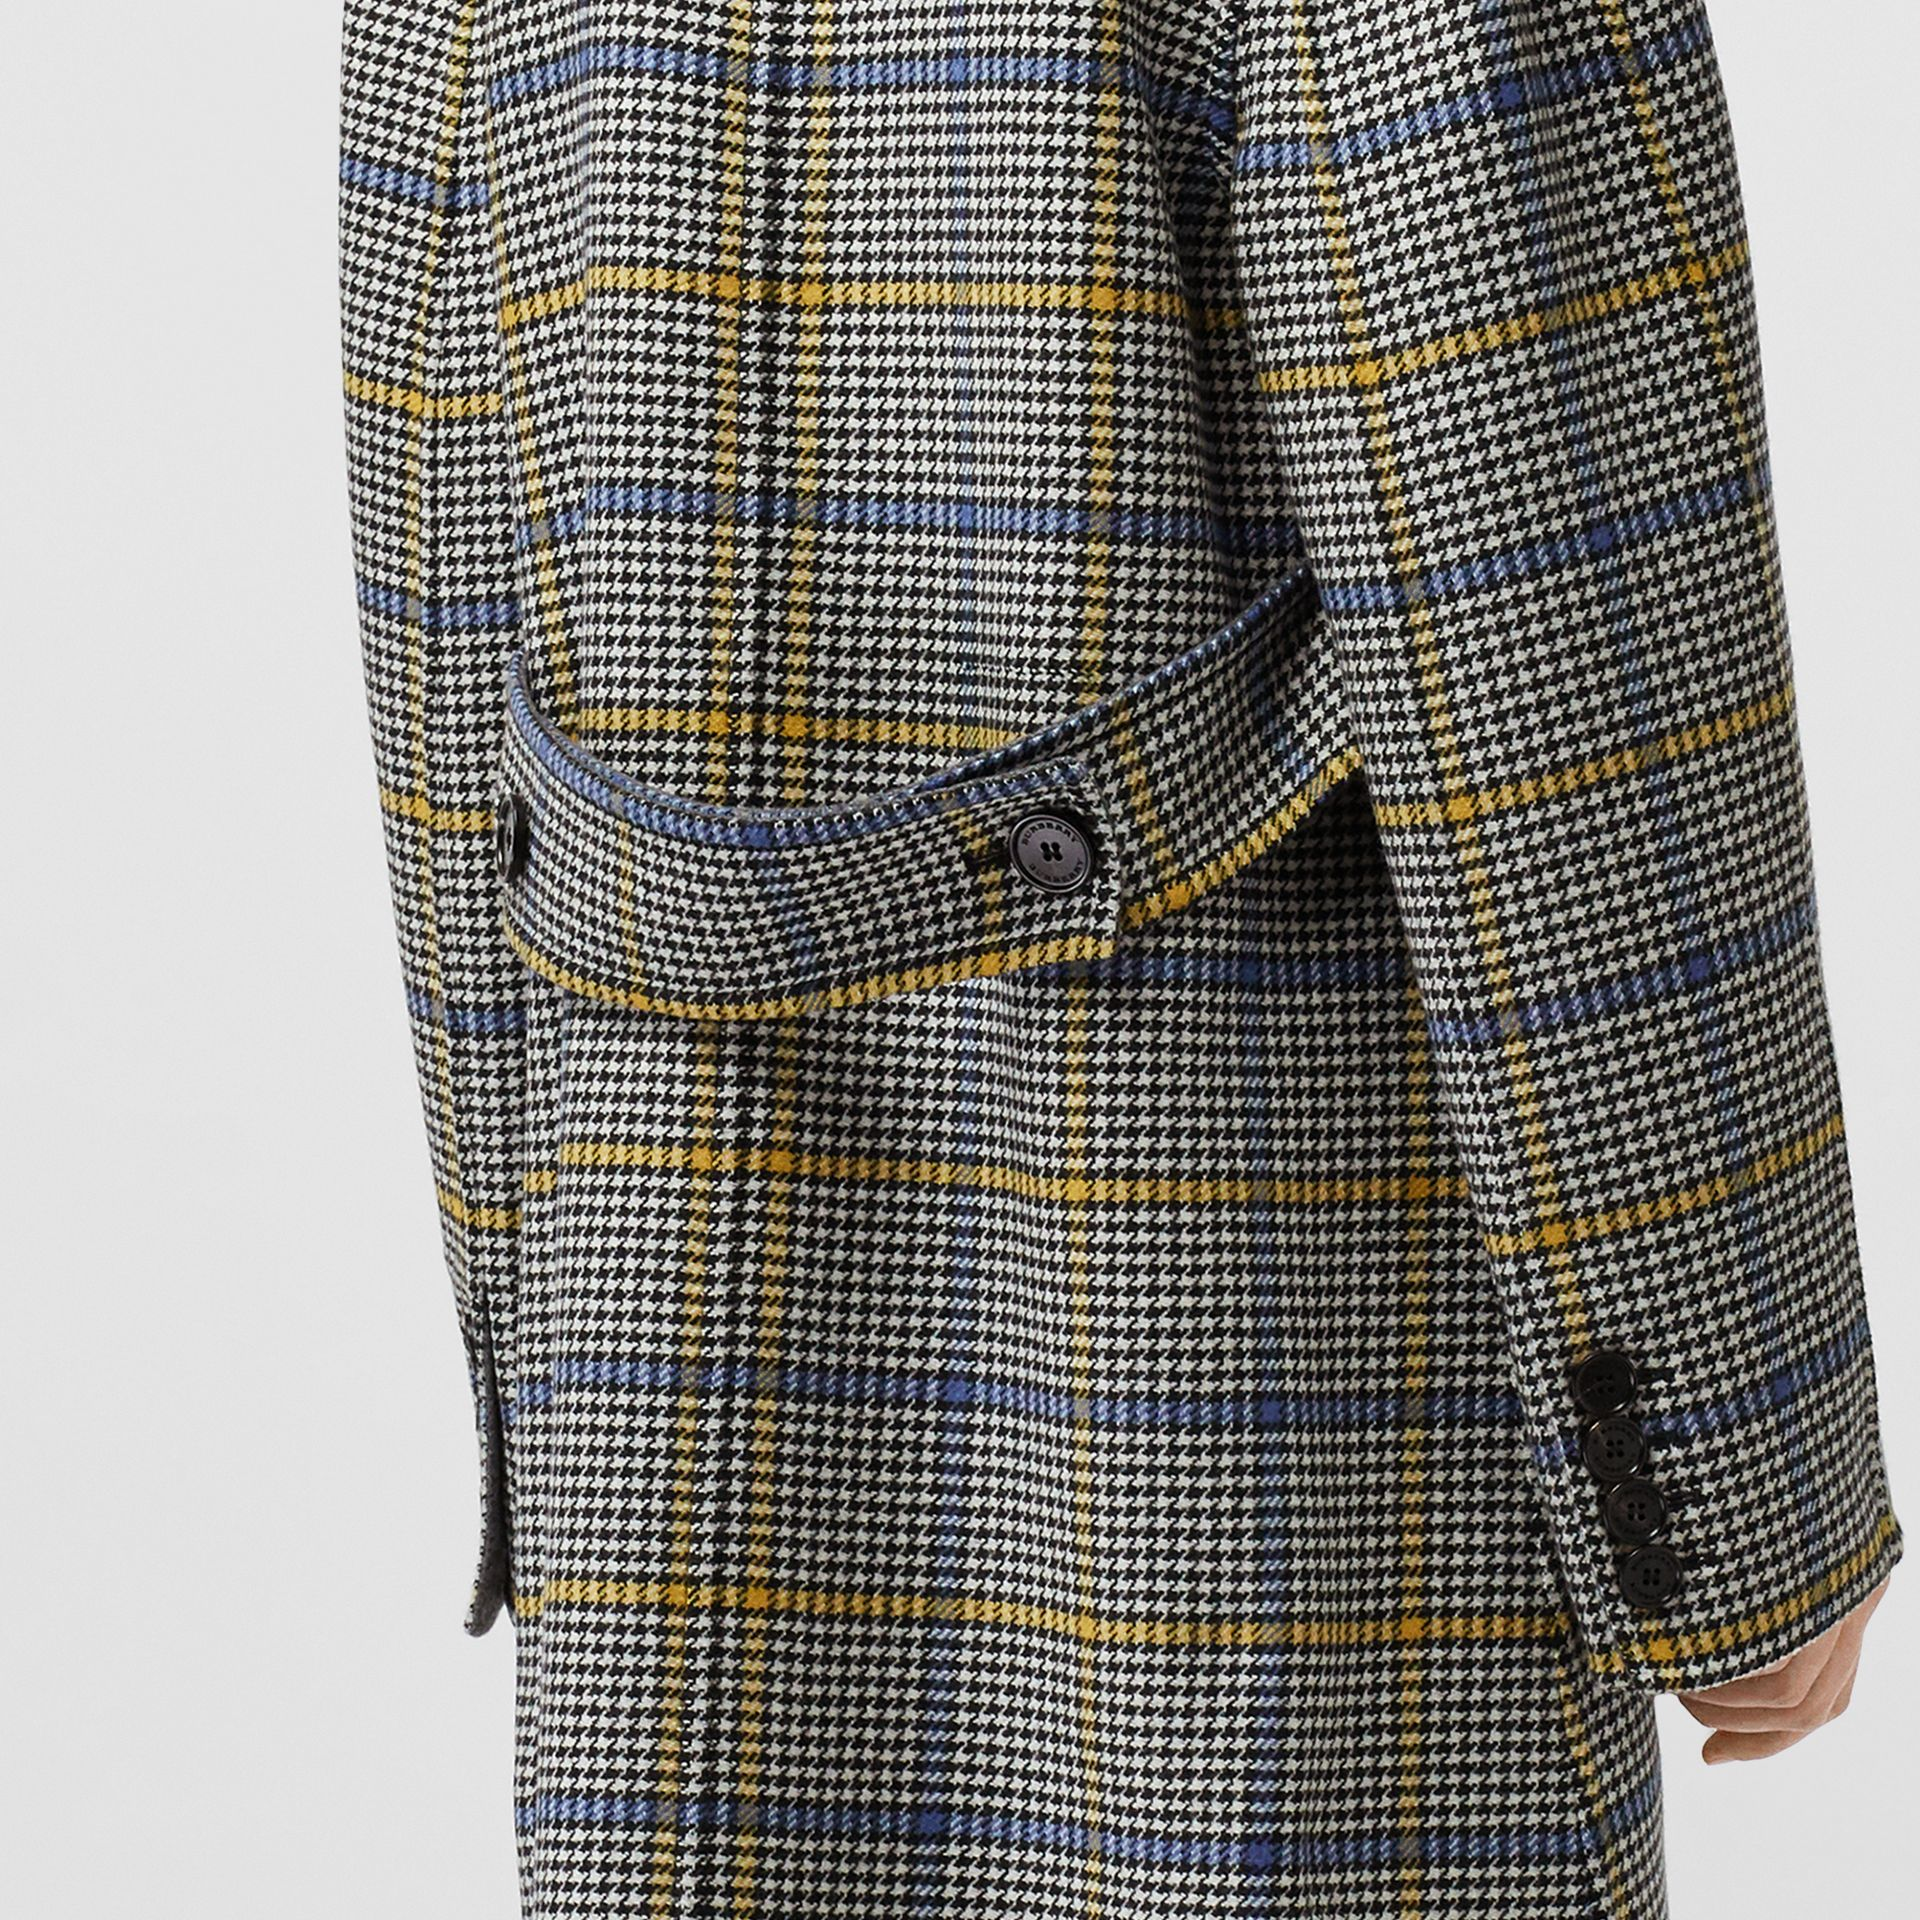 Double-faced Check Wool Cashmere Coat in Parchment - Women | Burberry Australia - gallery image 4